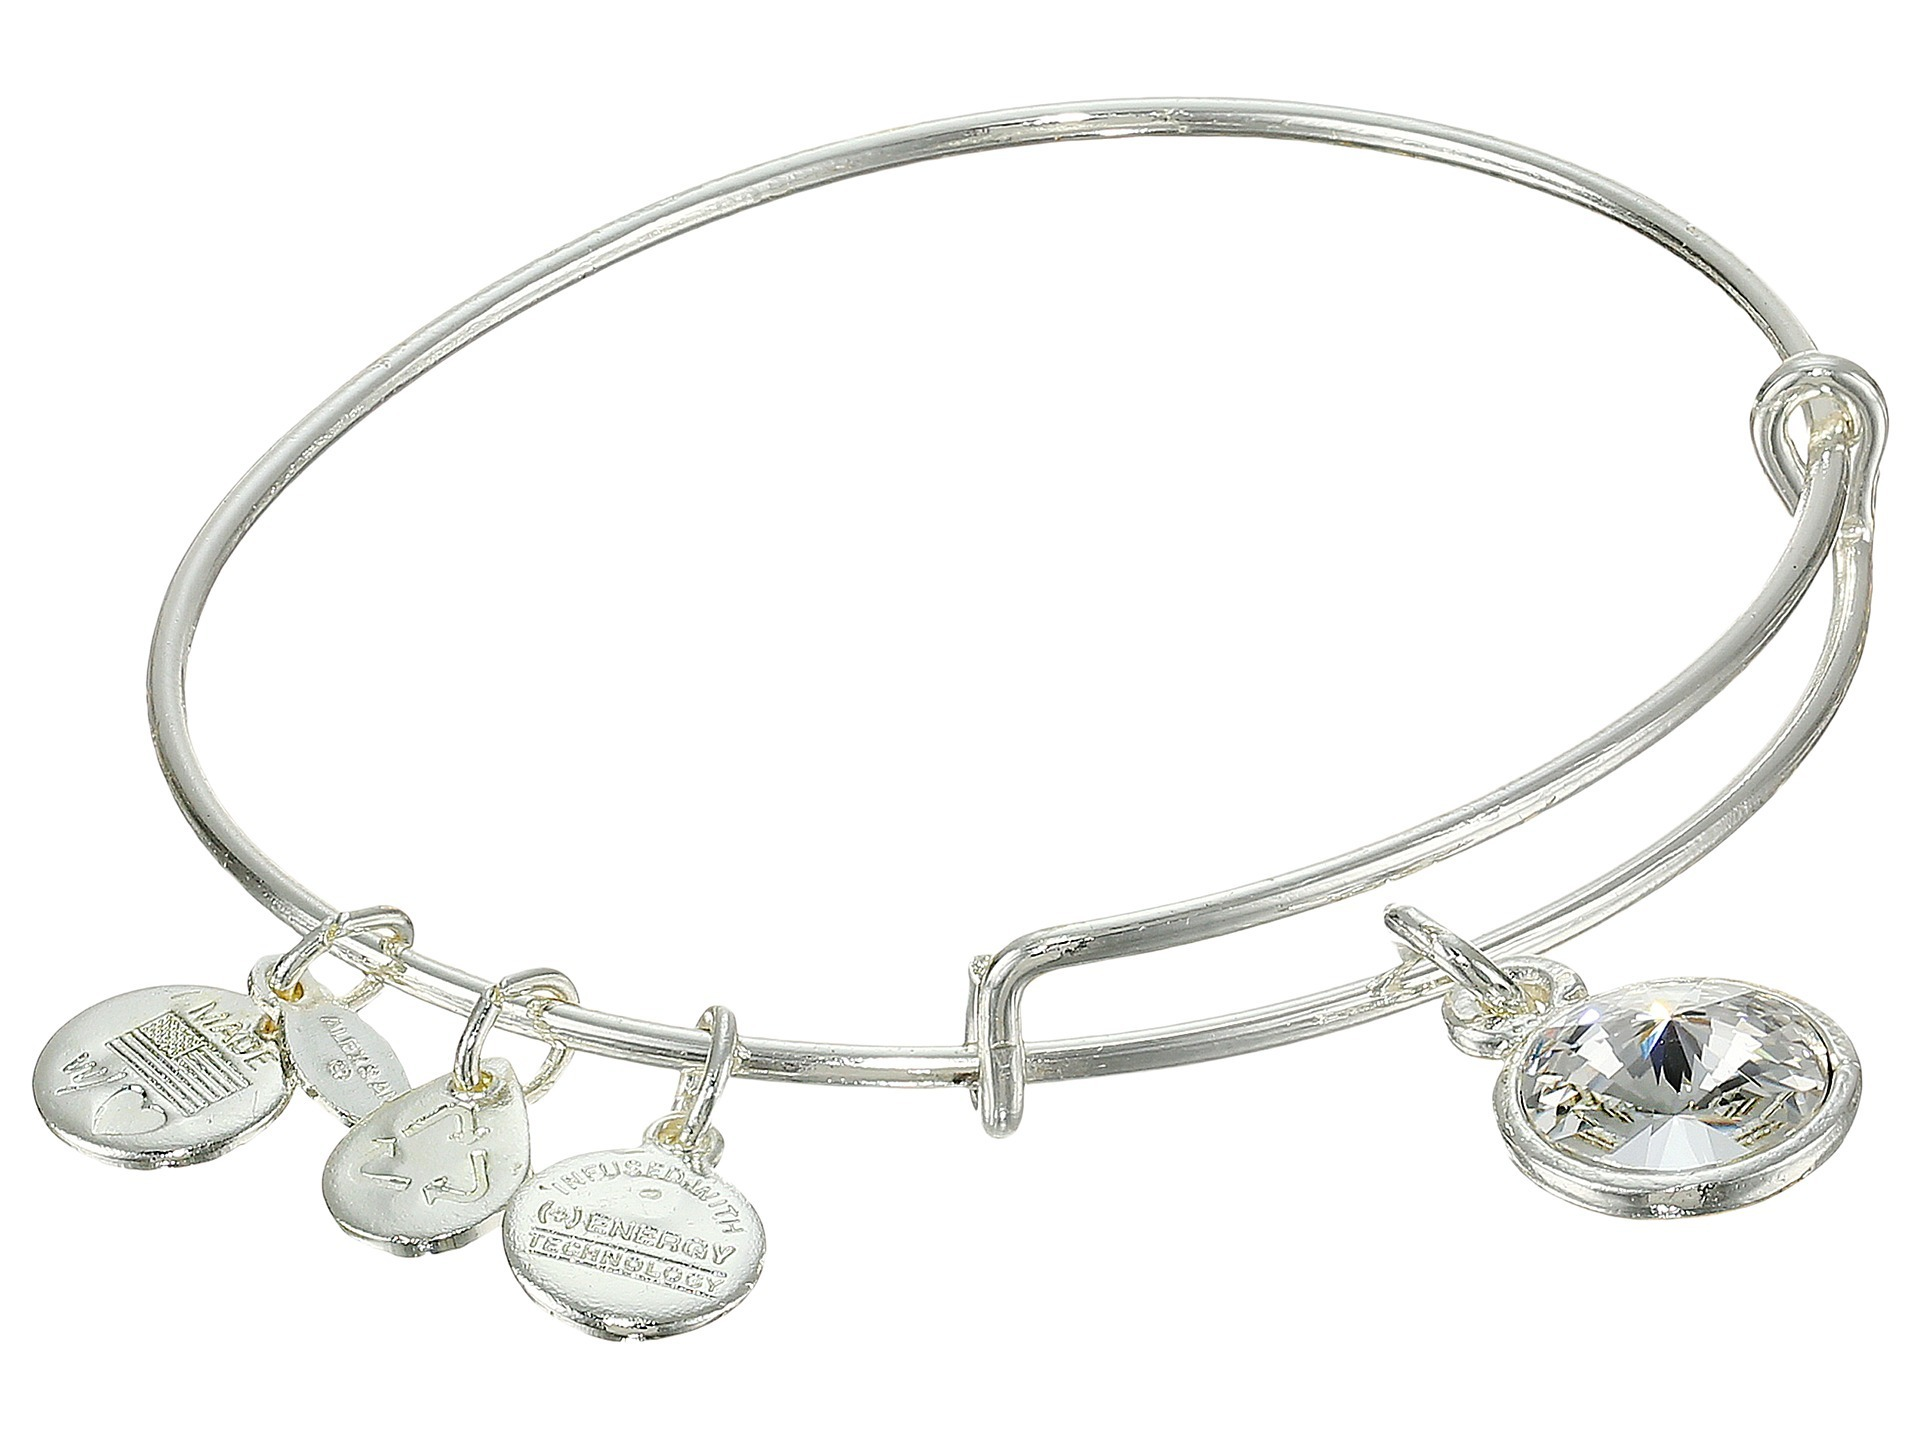 【大人気】April Birthstone Charm Bangle バングル